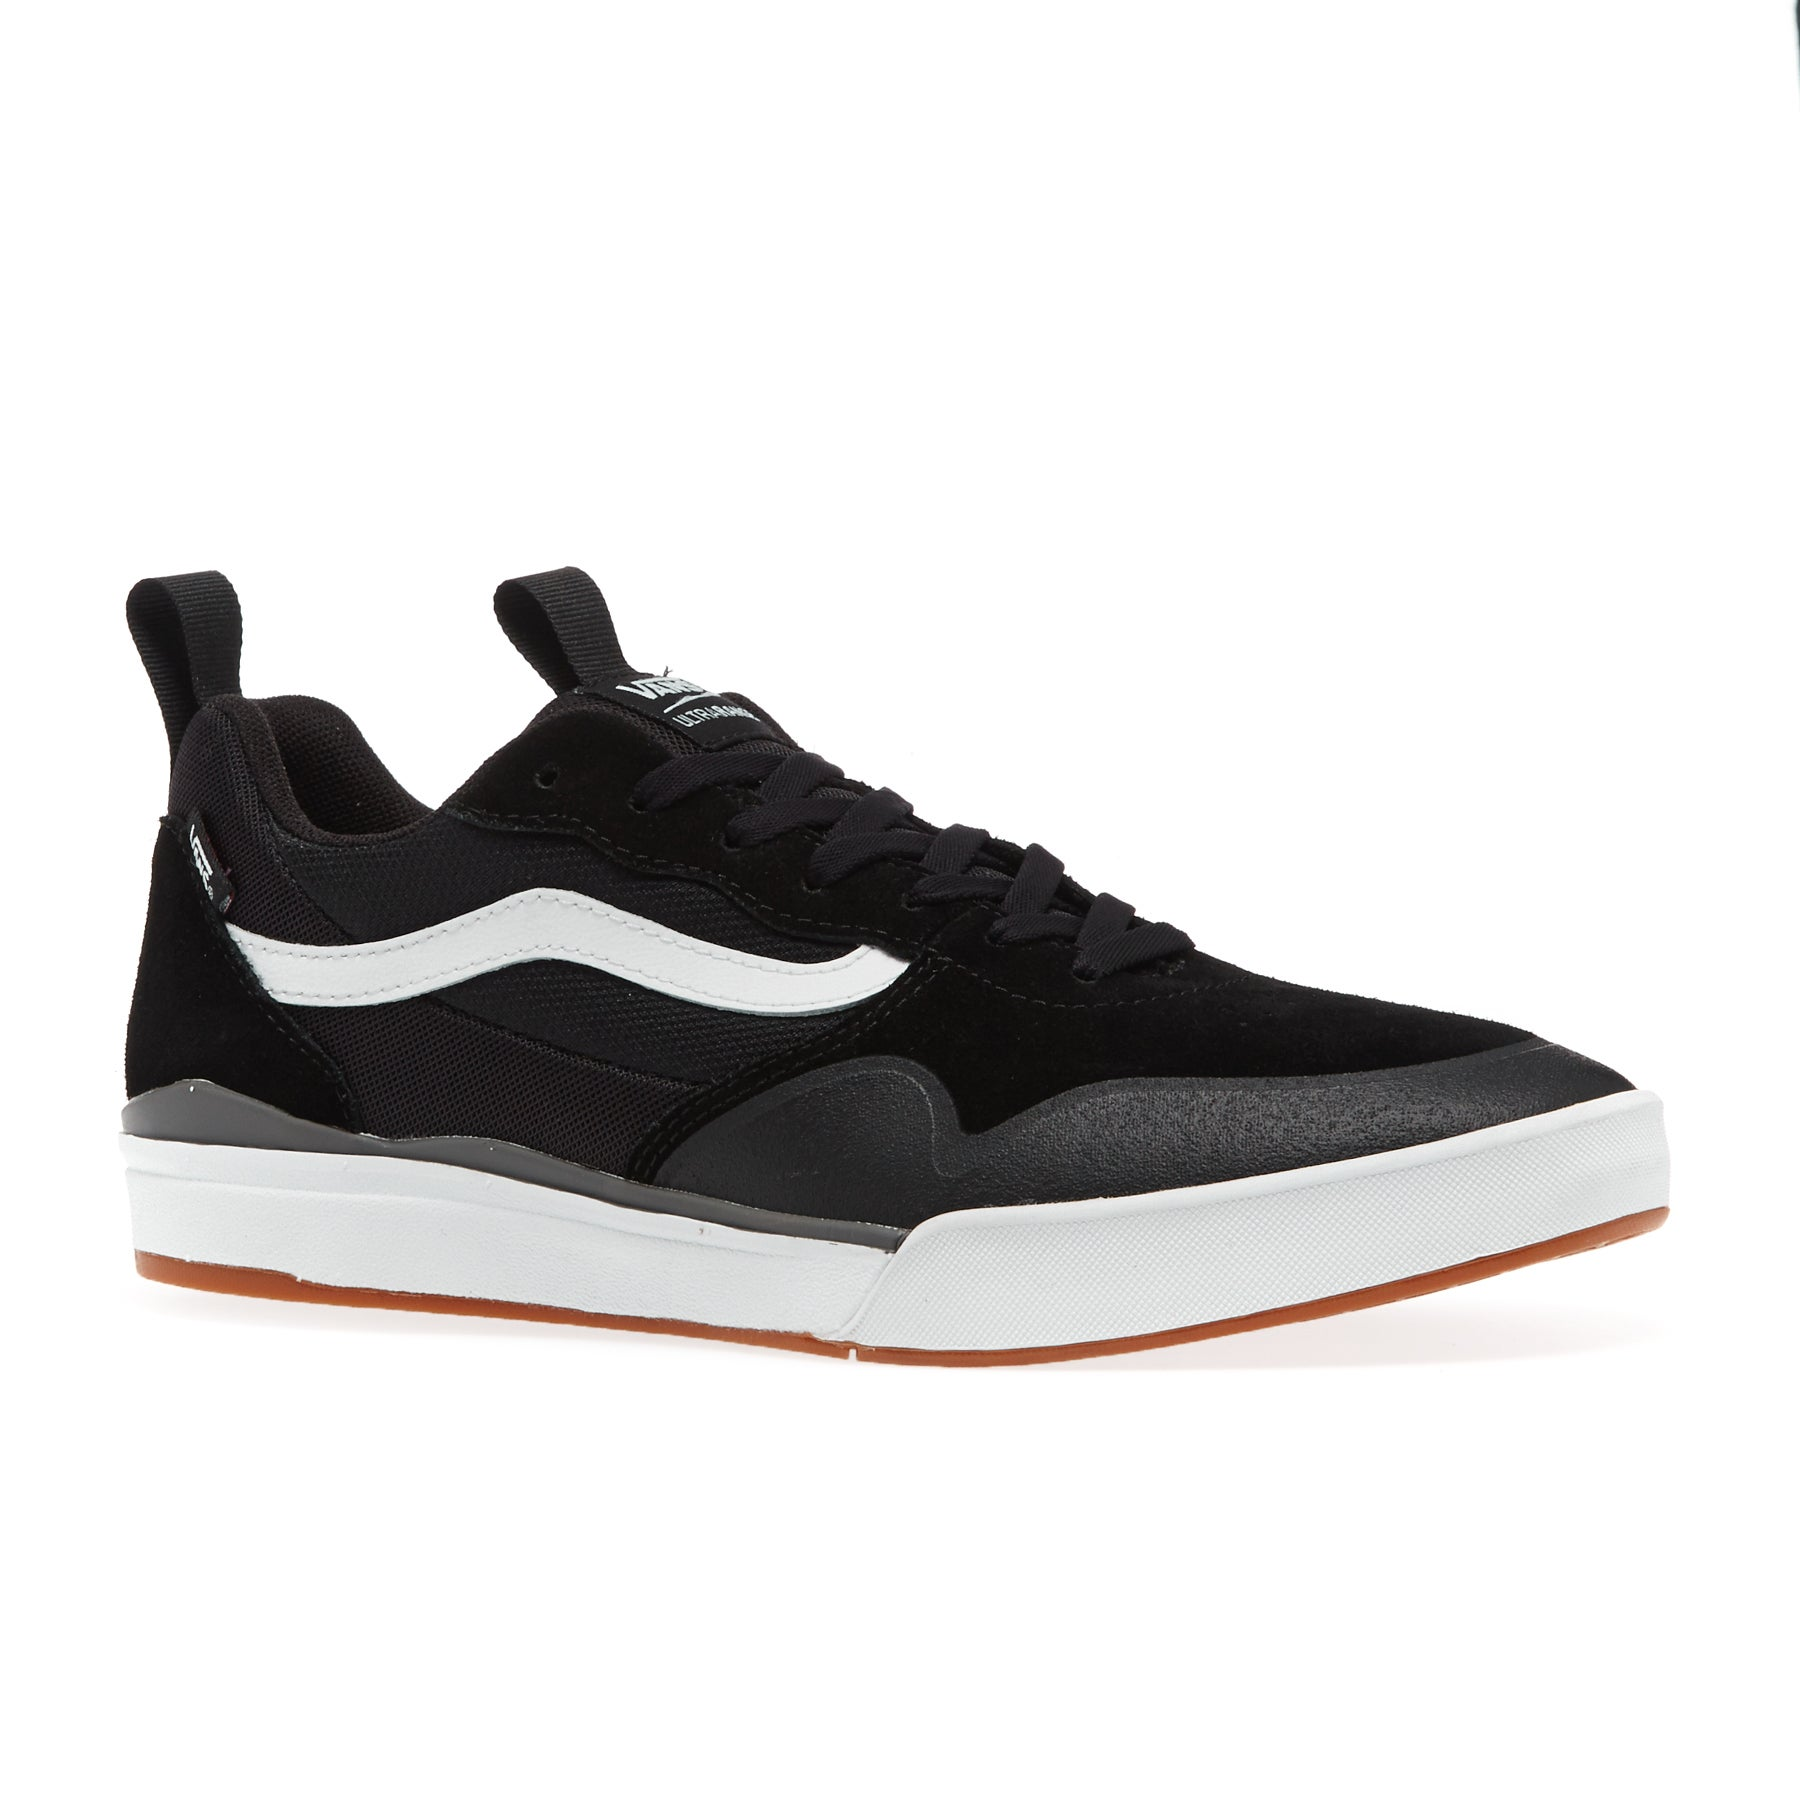 a33e57785 Vans Mn Ultrarange Pro 2 Shoes available from Surfdome